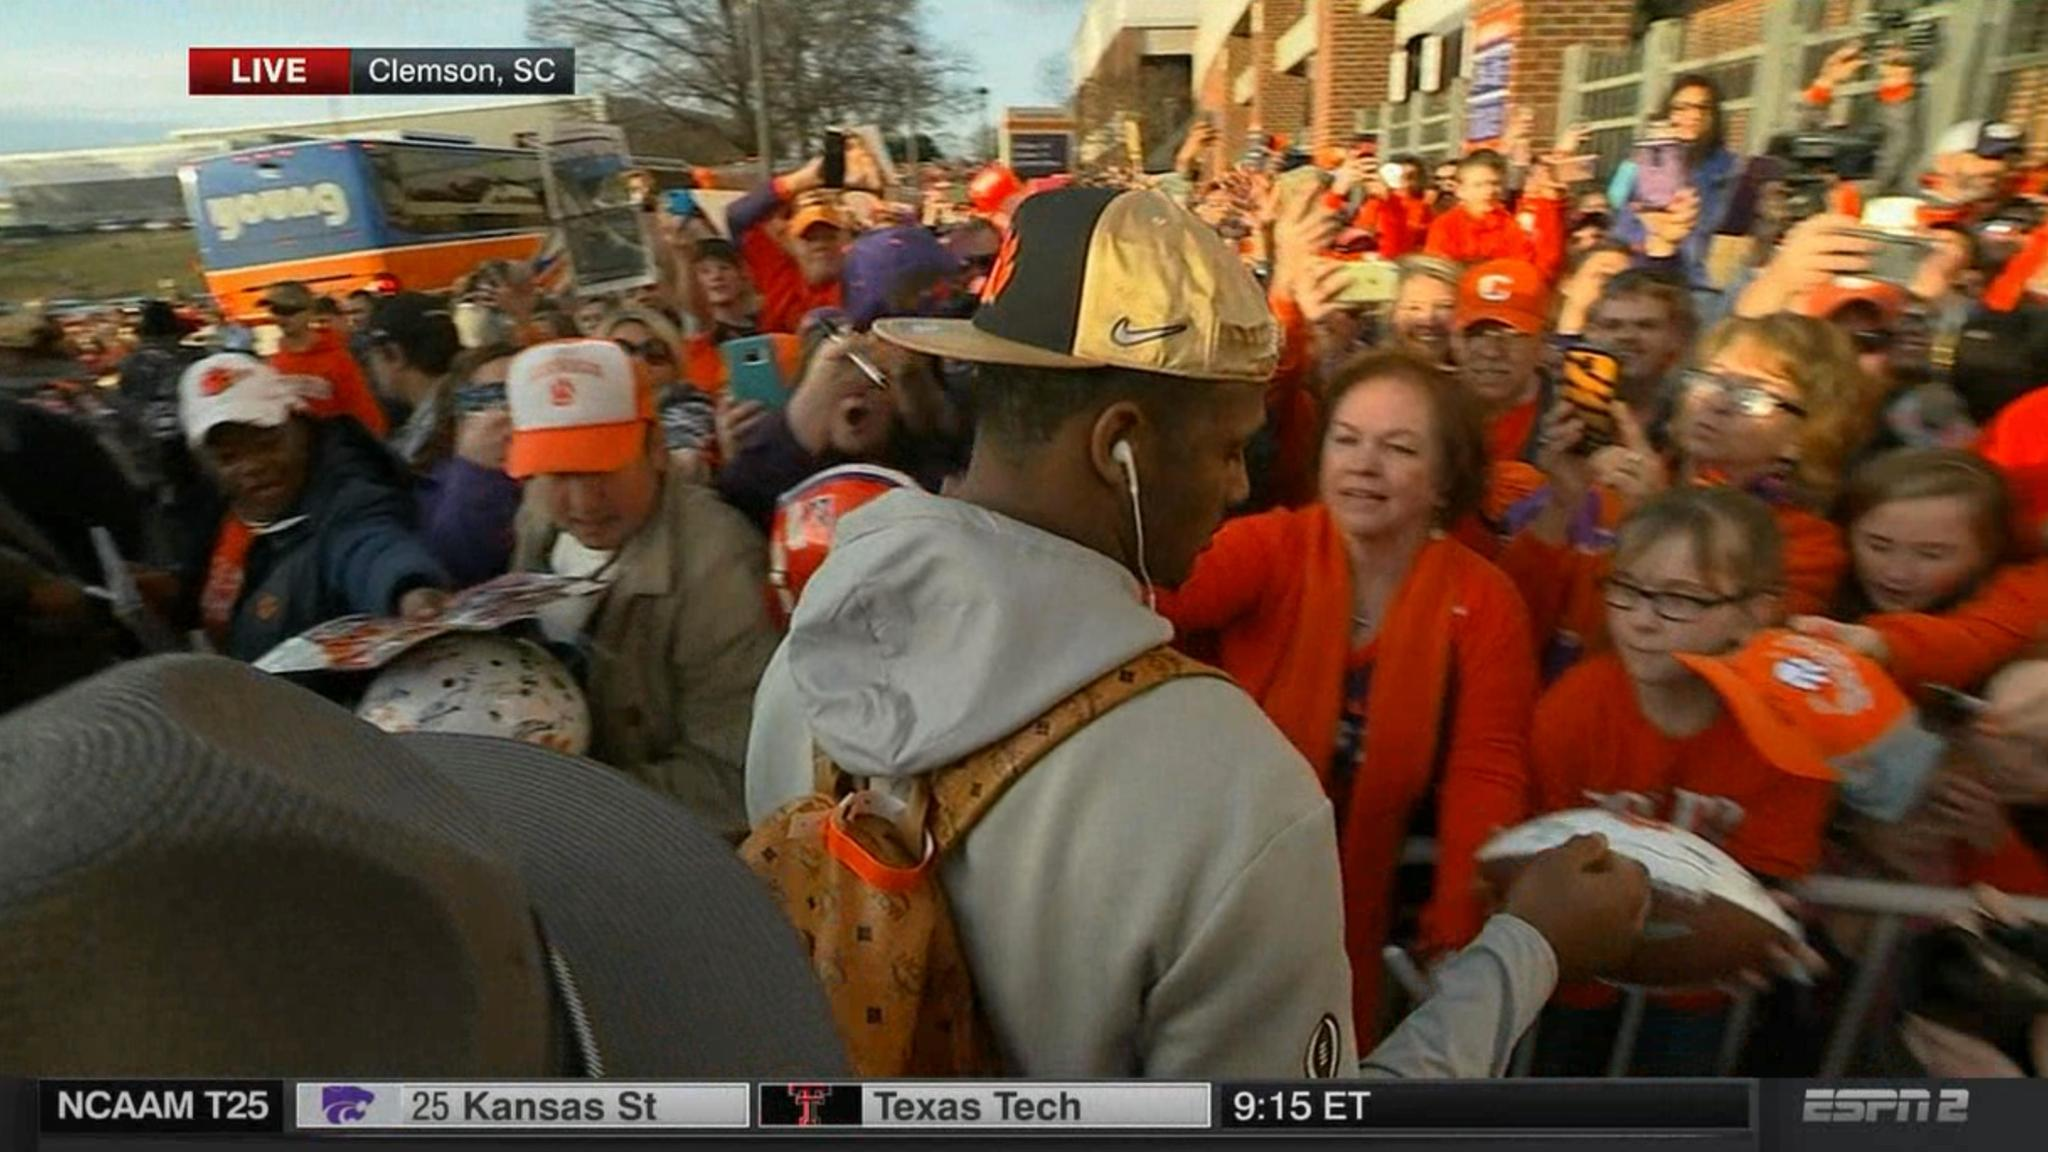 The Champs are back home.  Deshaun Watson and the Tigers arrive in Clemson. #LIVEonSC https://t.co/lBIdpzO8ua